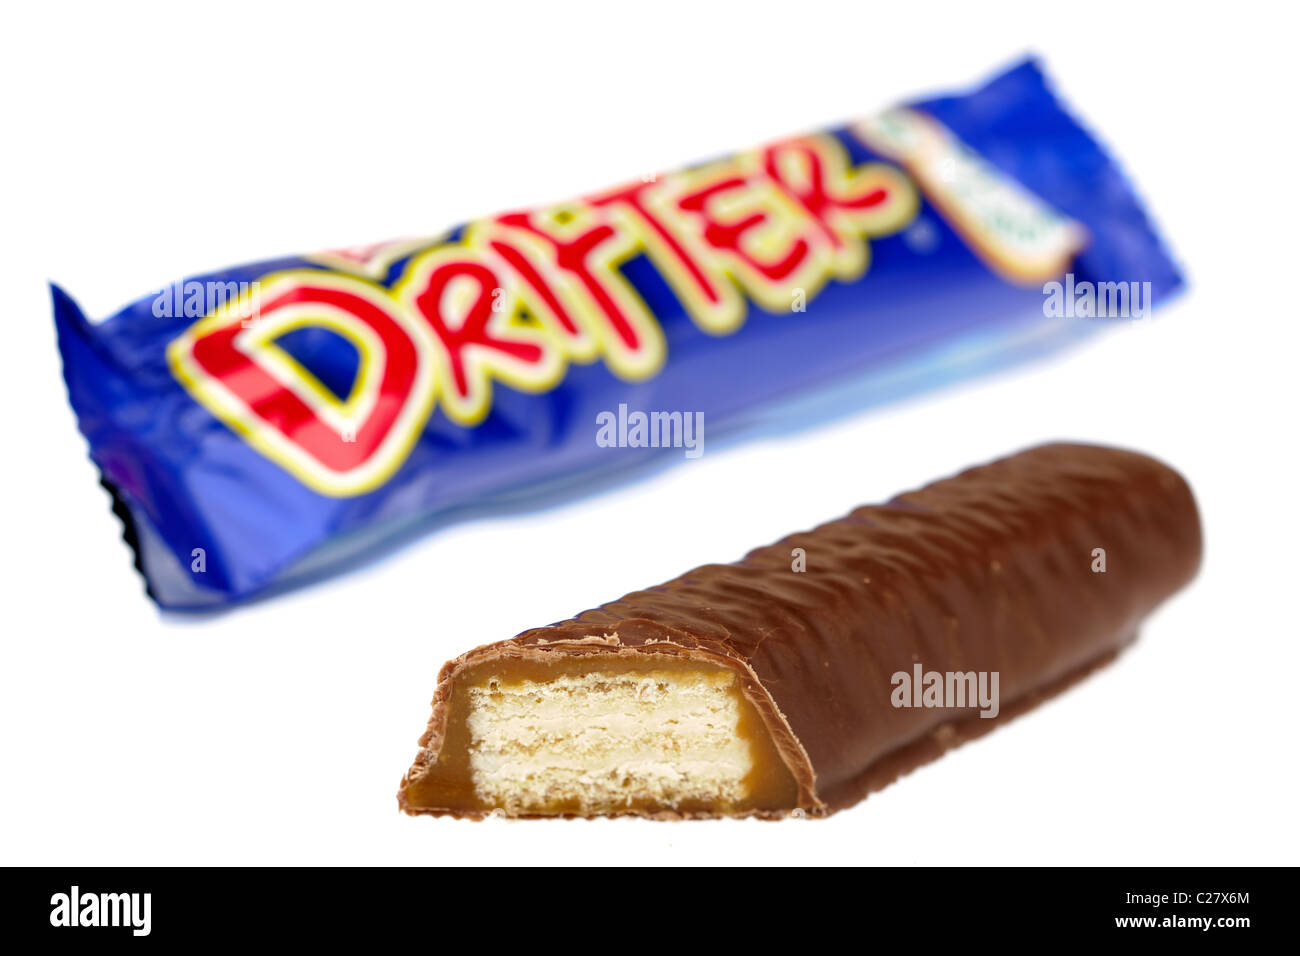 Halved Drifter chocolate biscuit - Stock Image